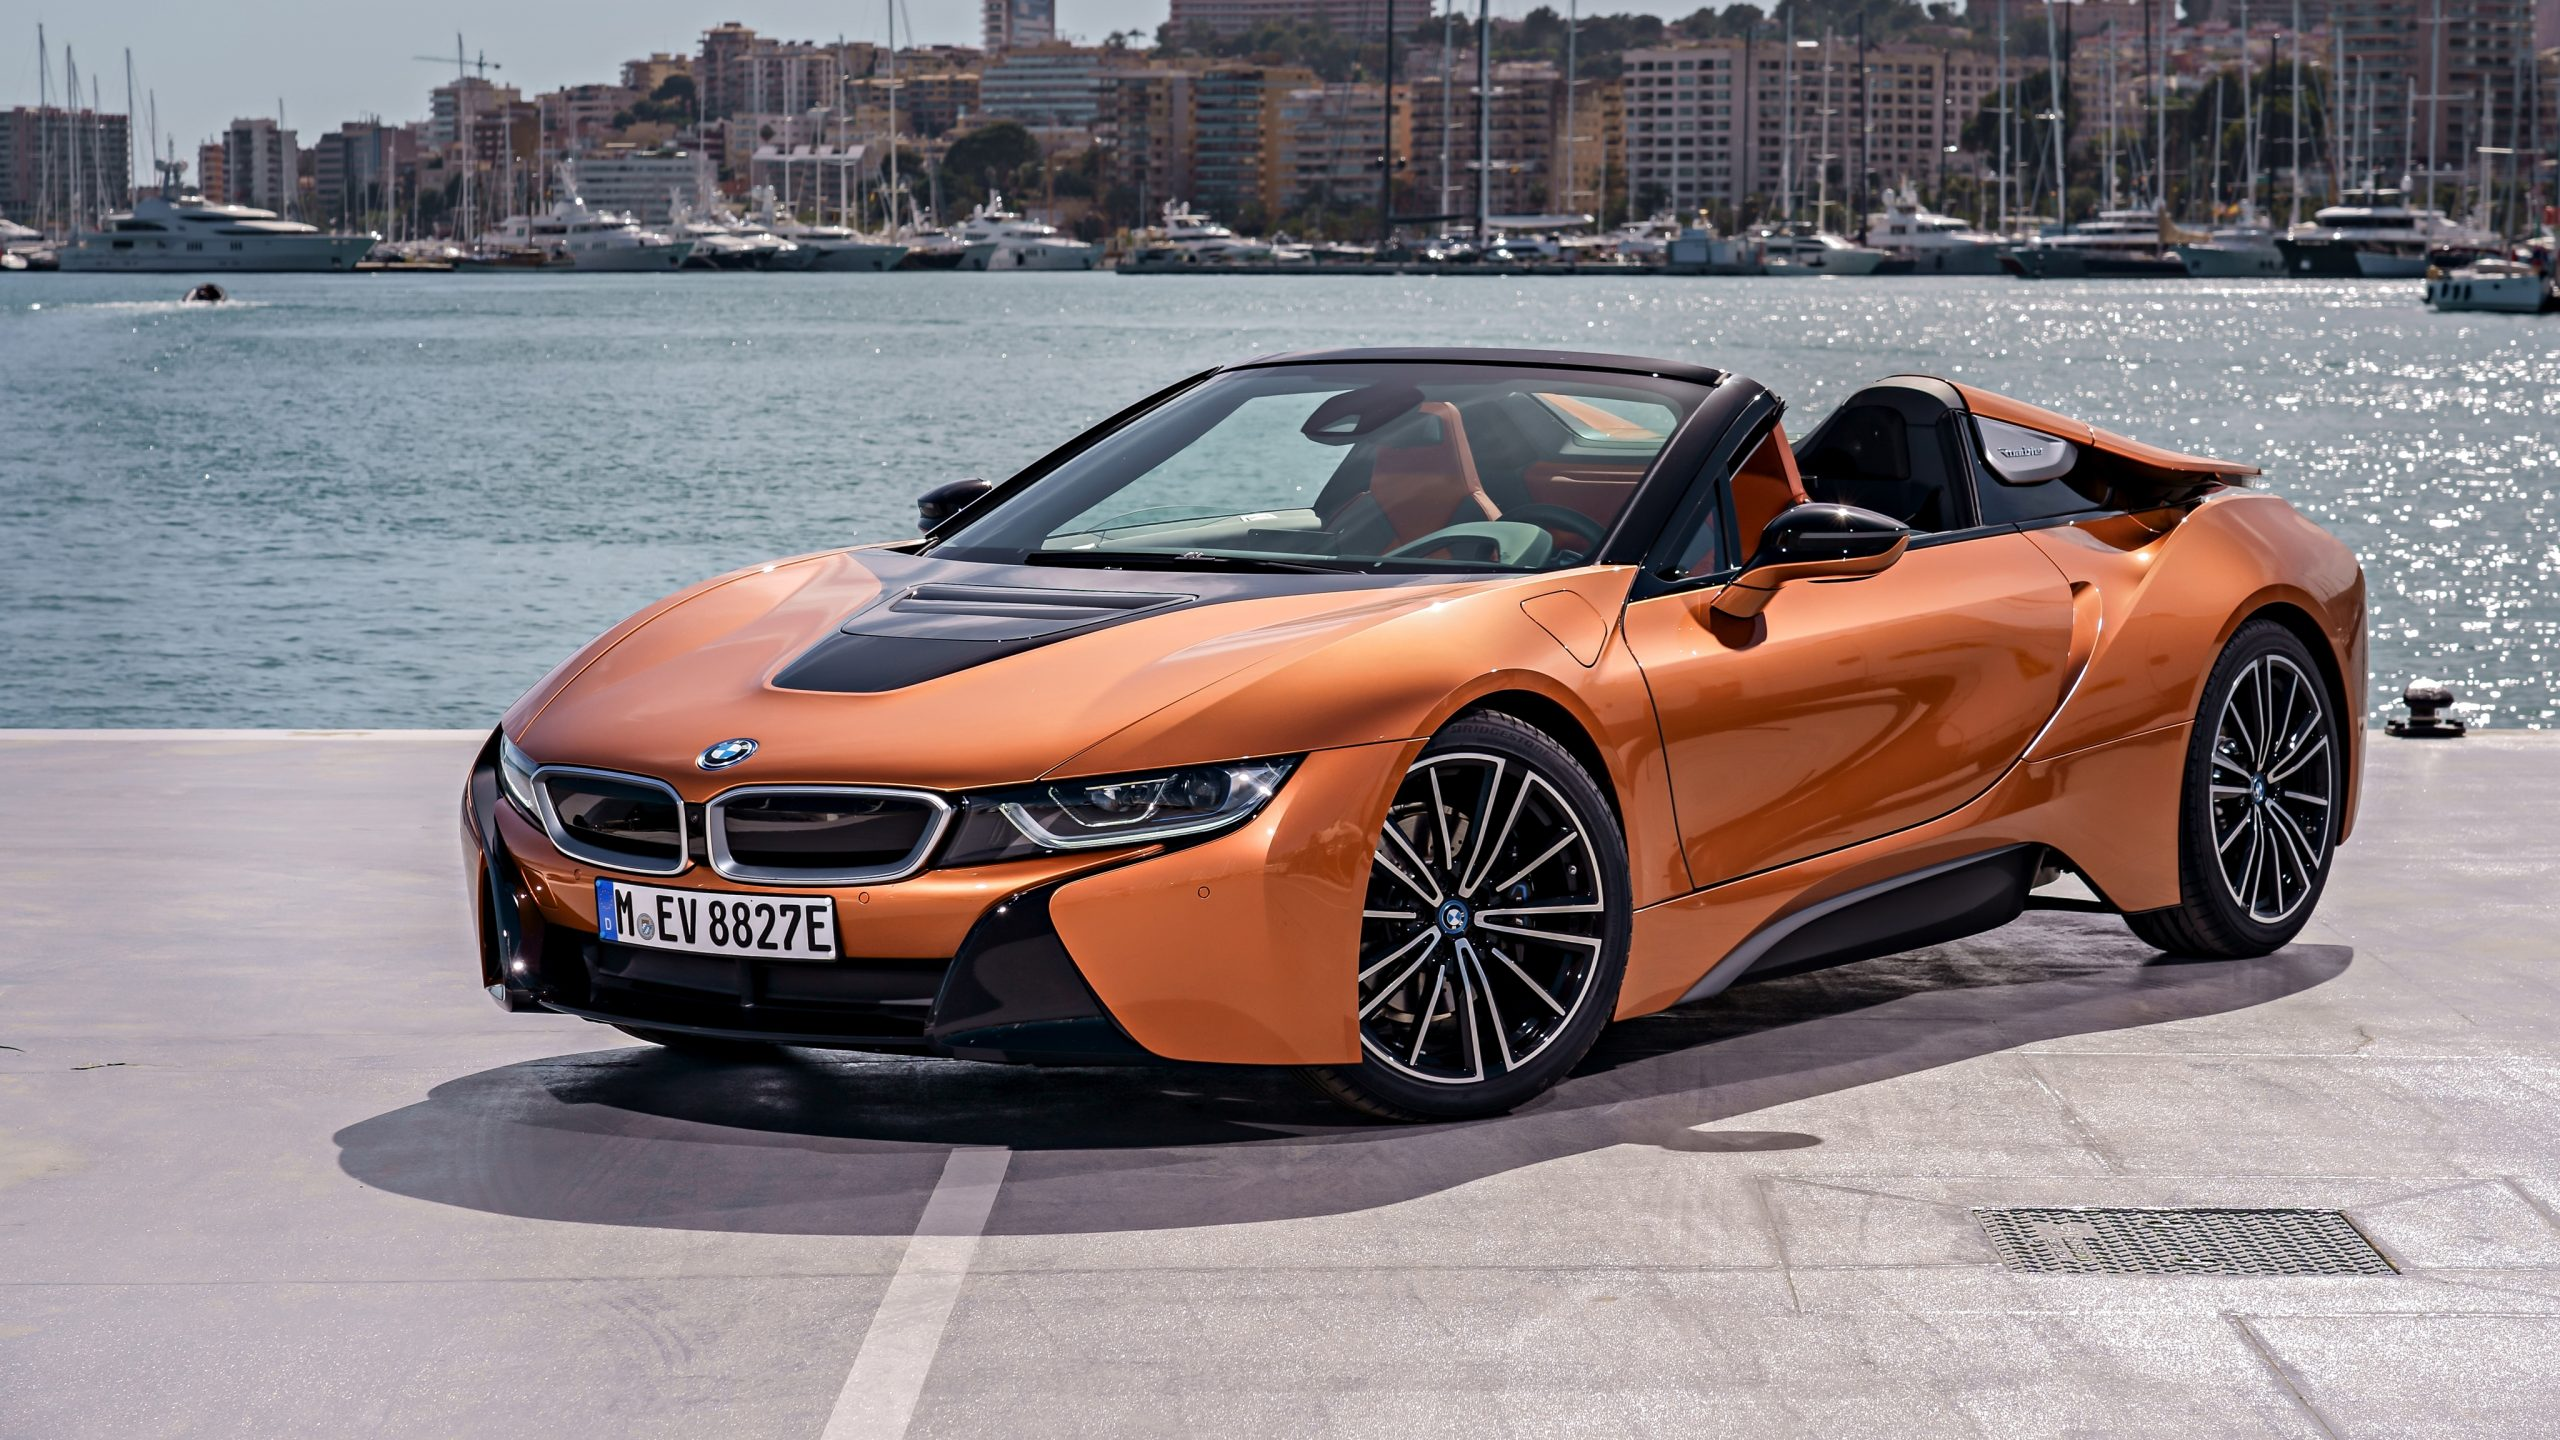 2018 Bmw I8 Roadster Wallpapers Viruscars